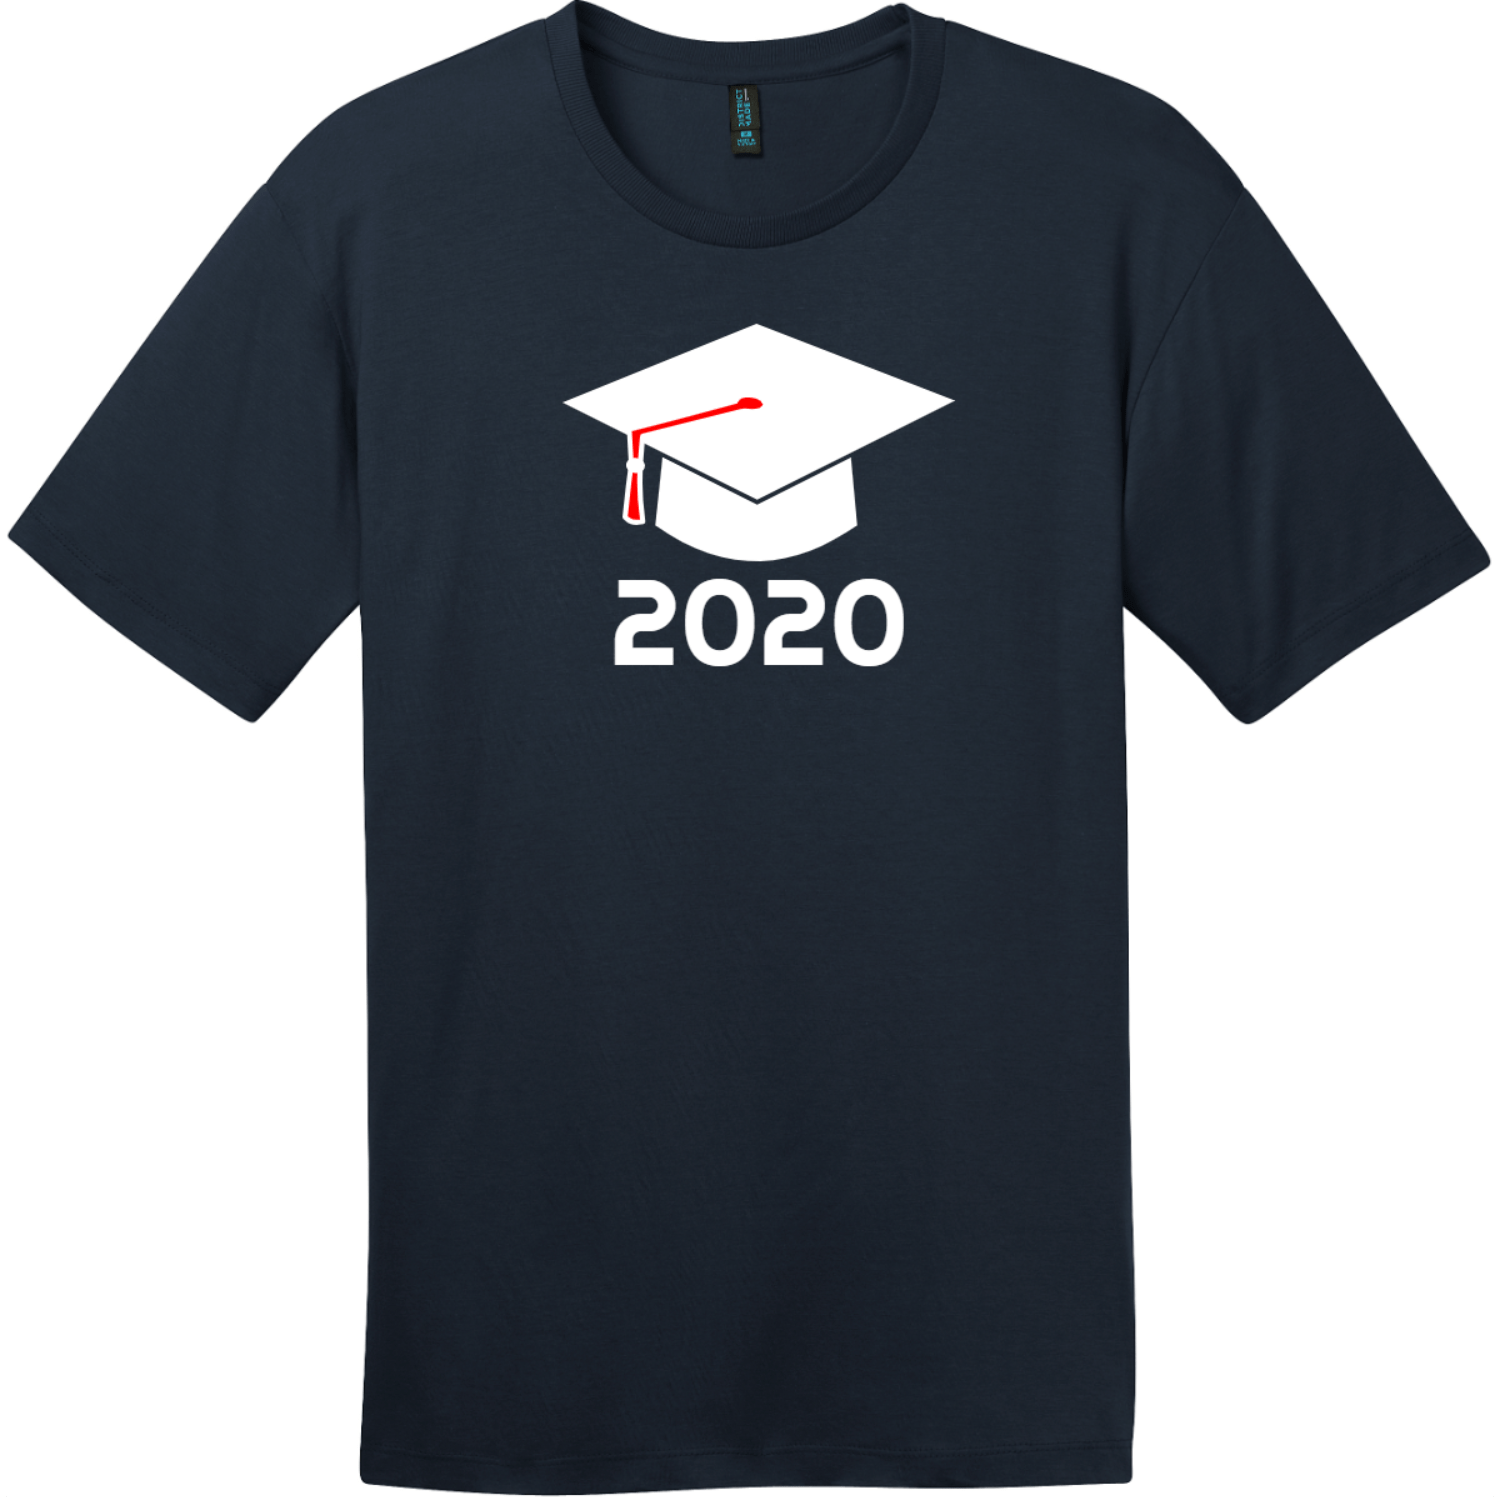 Class of 2020 T-Shirt New Navy District Perfect Weight Tee DT104